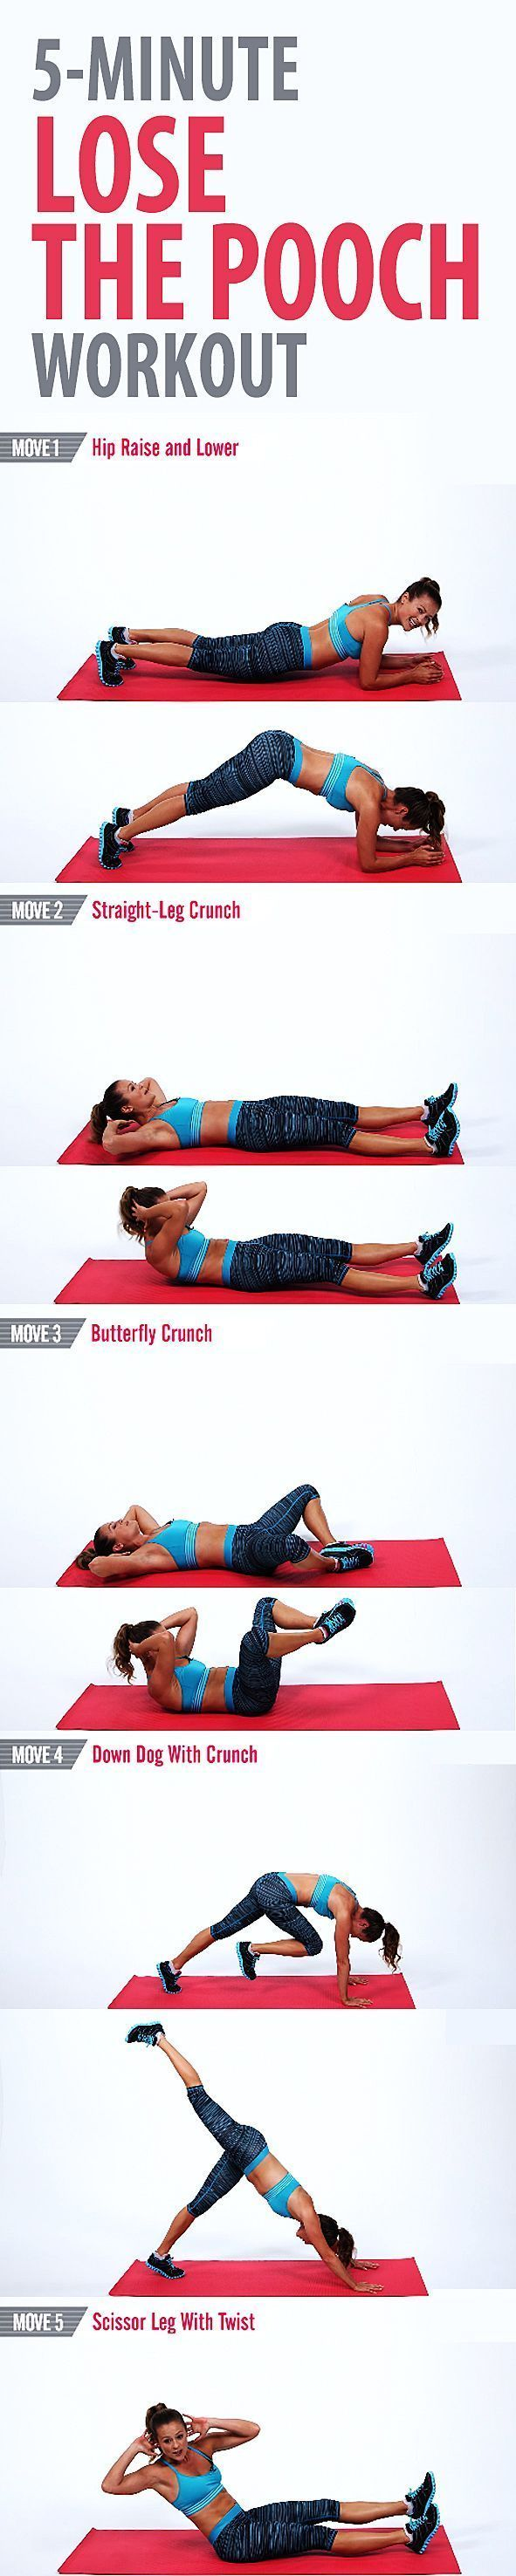 Try this quick and focused workout to tone the lower part of your abs and work off the pooch. We concentrate on the abs for five minutes and guarantee you feel the burn. You don't need any equipment, but don't forget to breathe! #abworkout #fitness